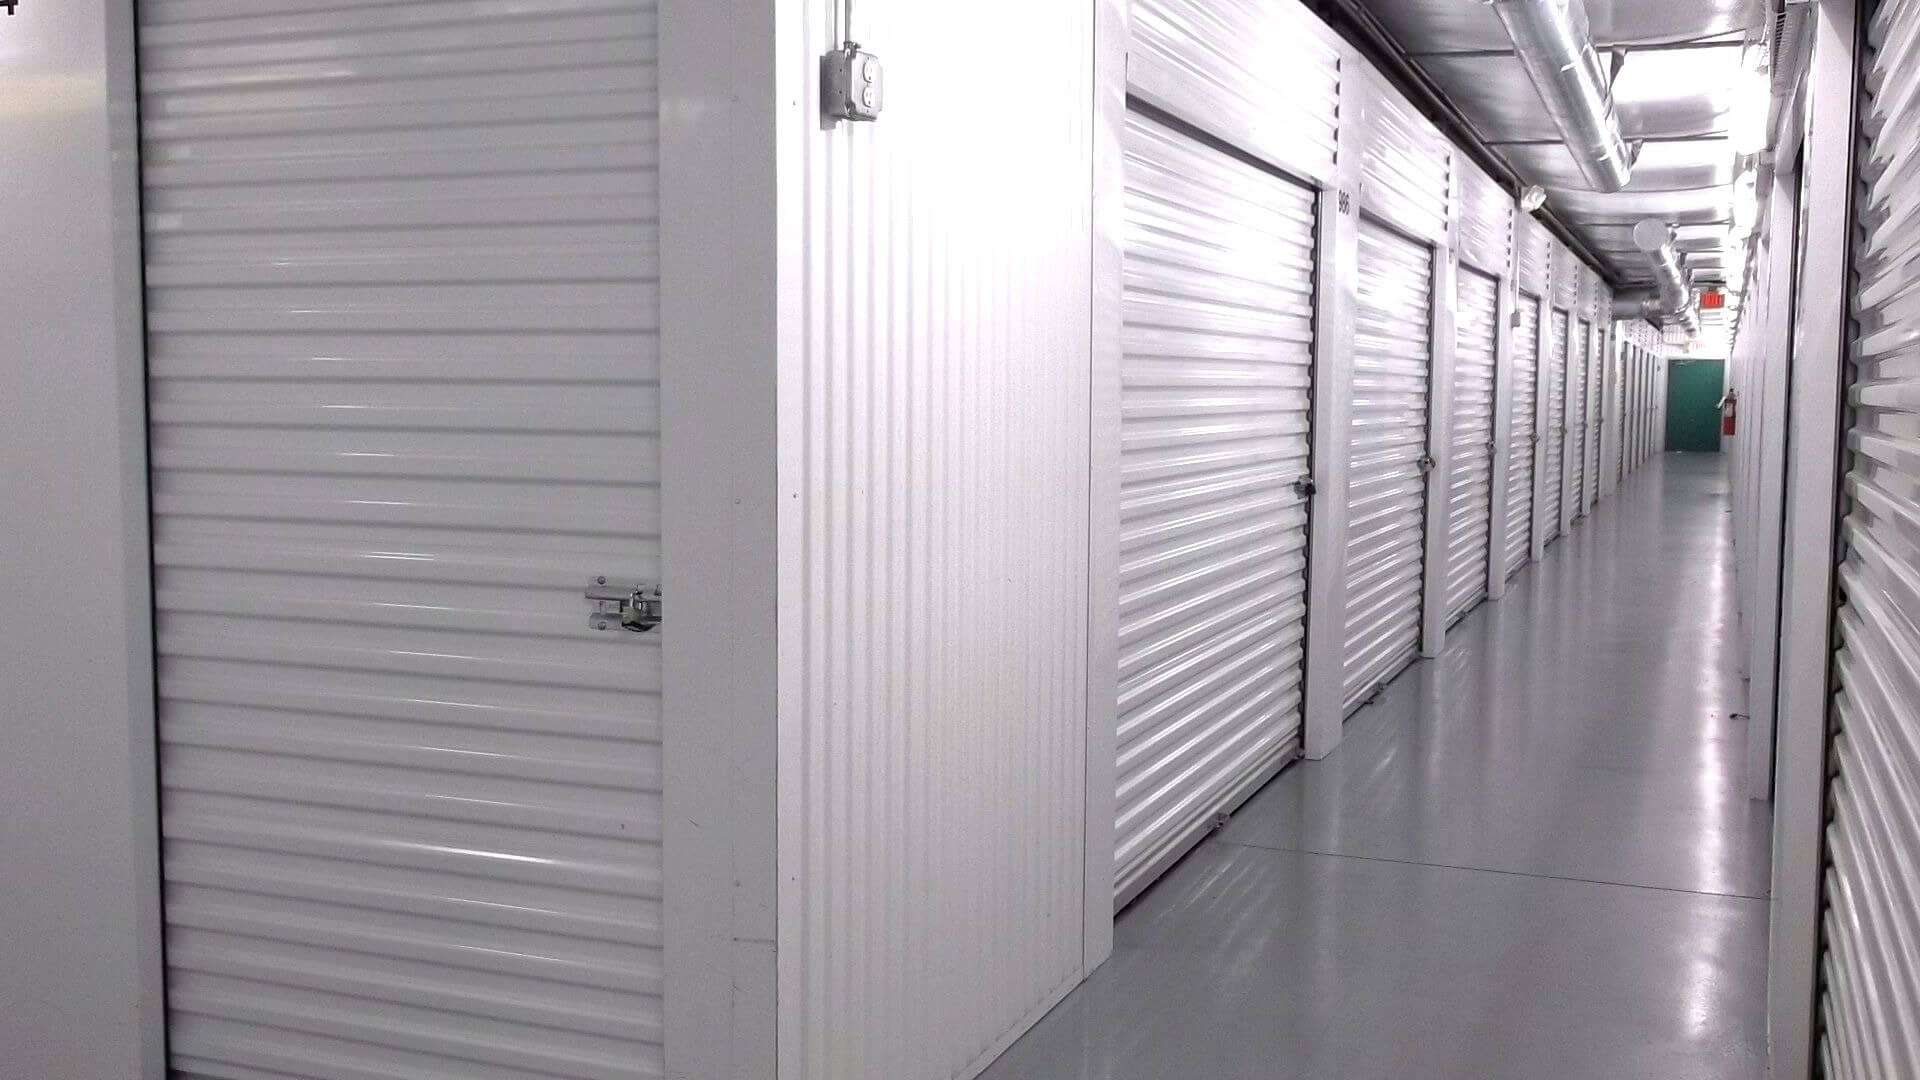 Inside row of storage units at Smart Stop self storage facility located at 338 Jesse Street, Myrtle Beach South Carolina